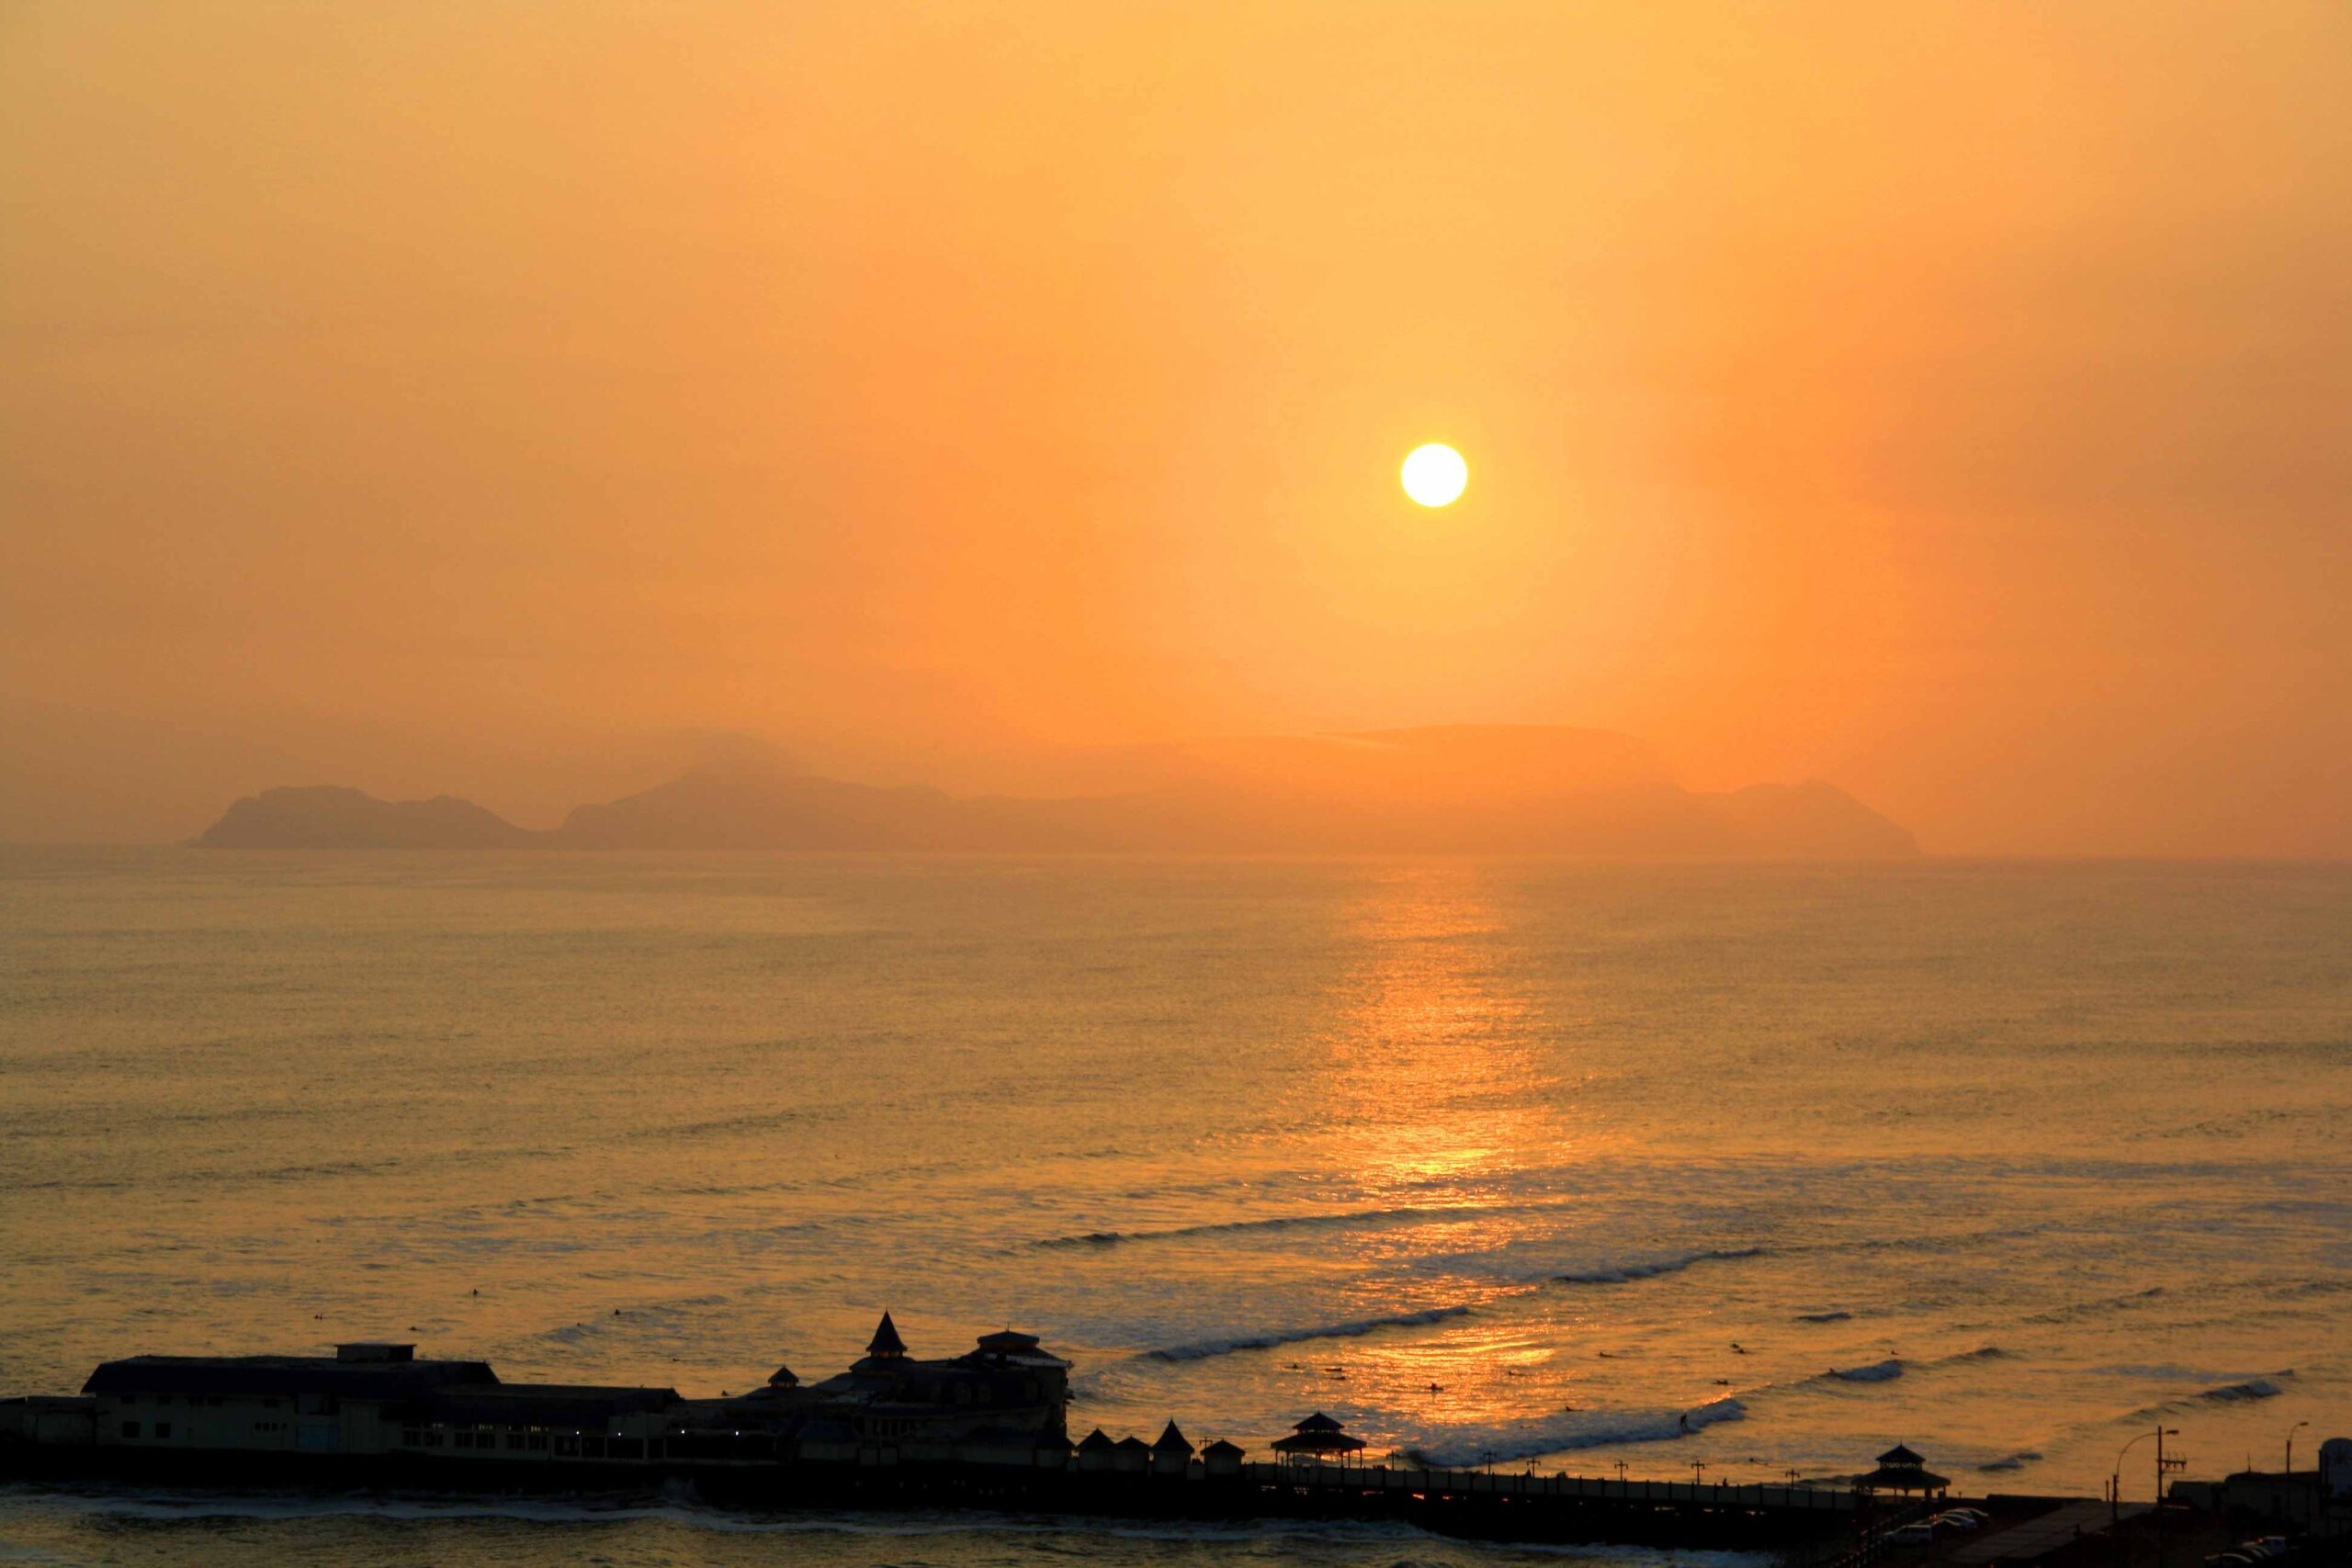 sunset view from Miraflores Lima Peru